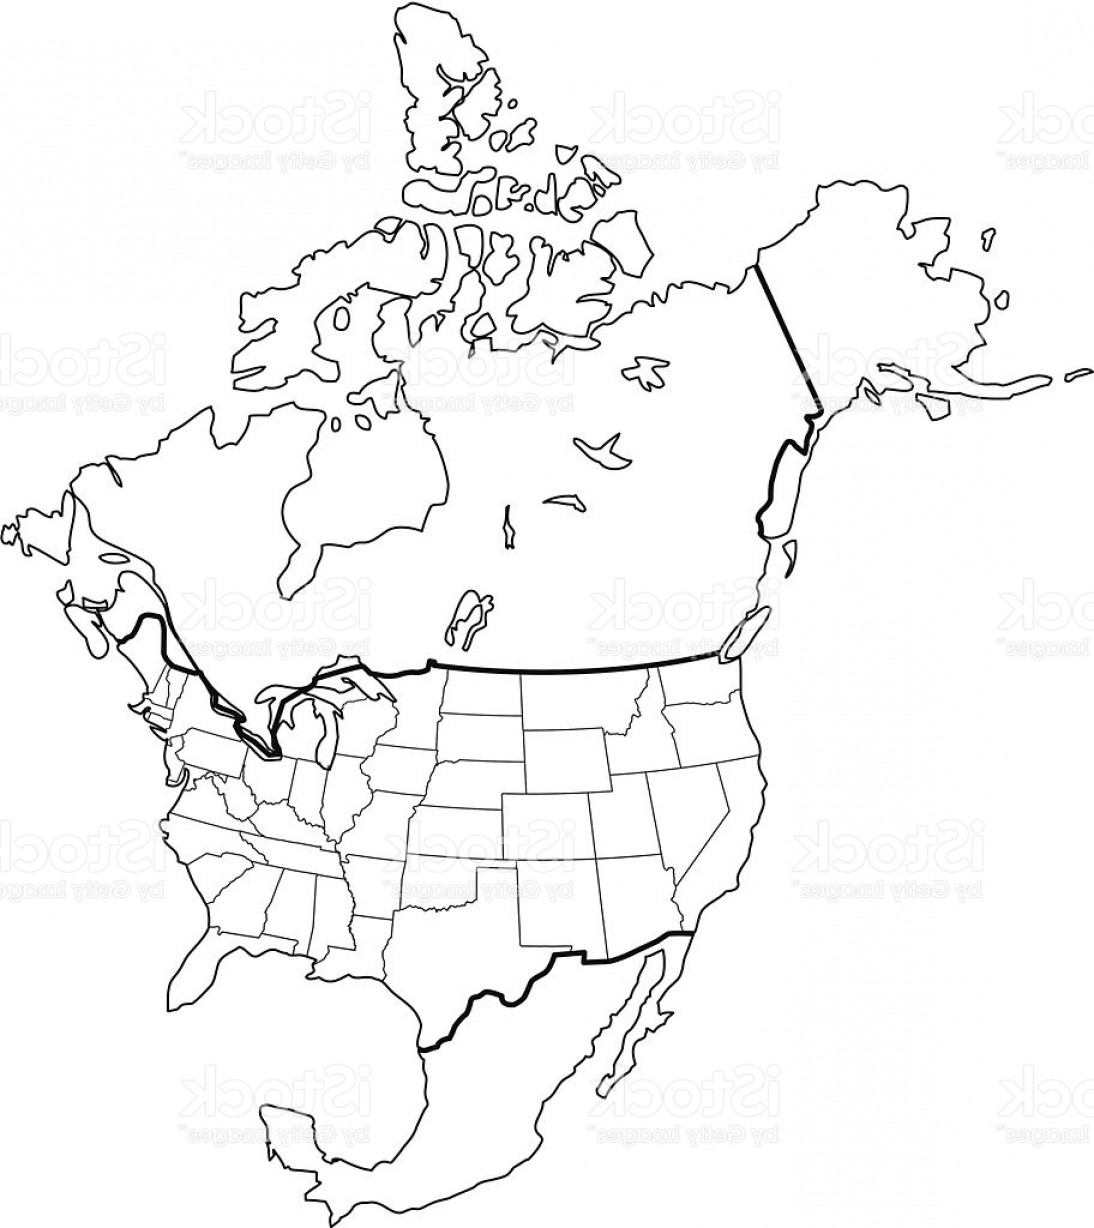 Alaska State White Background Vectors: North America Map Outline White Background Gm